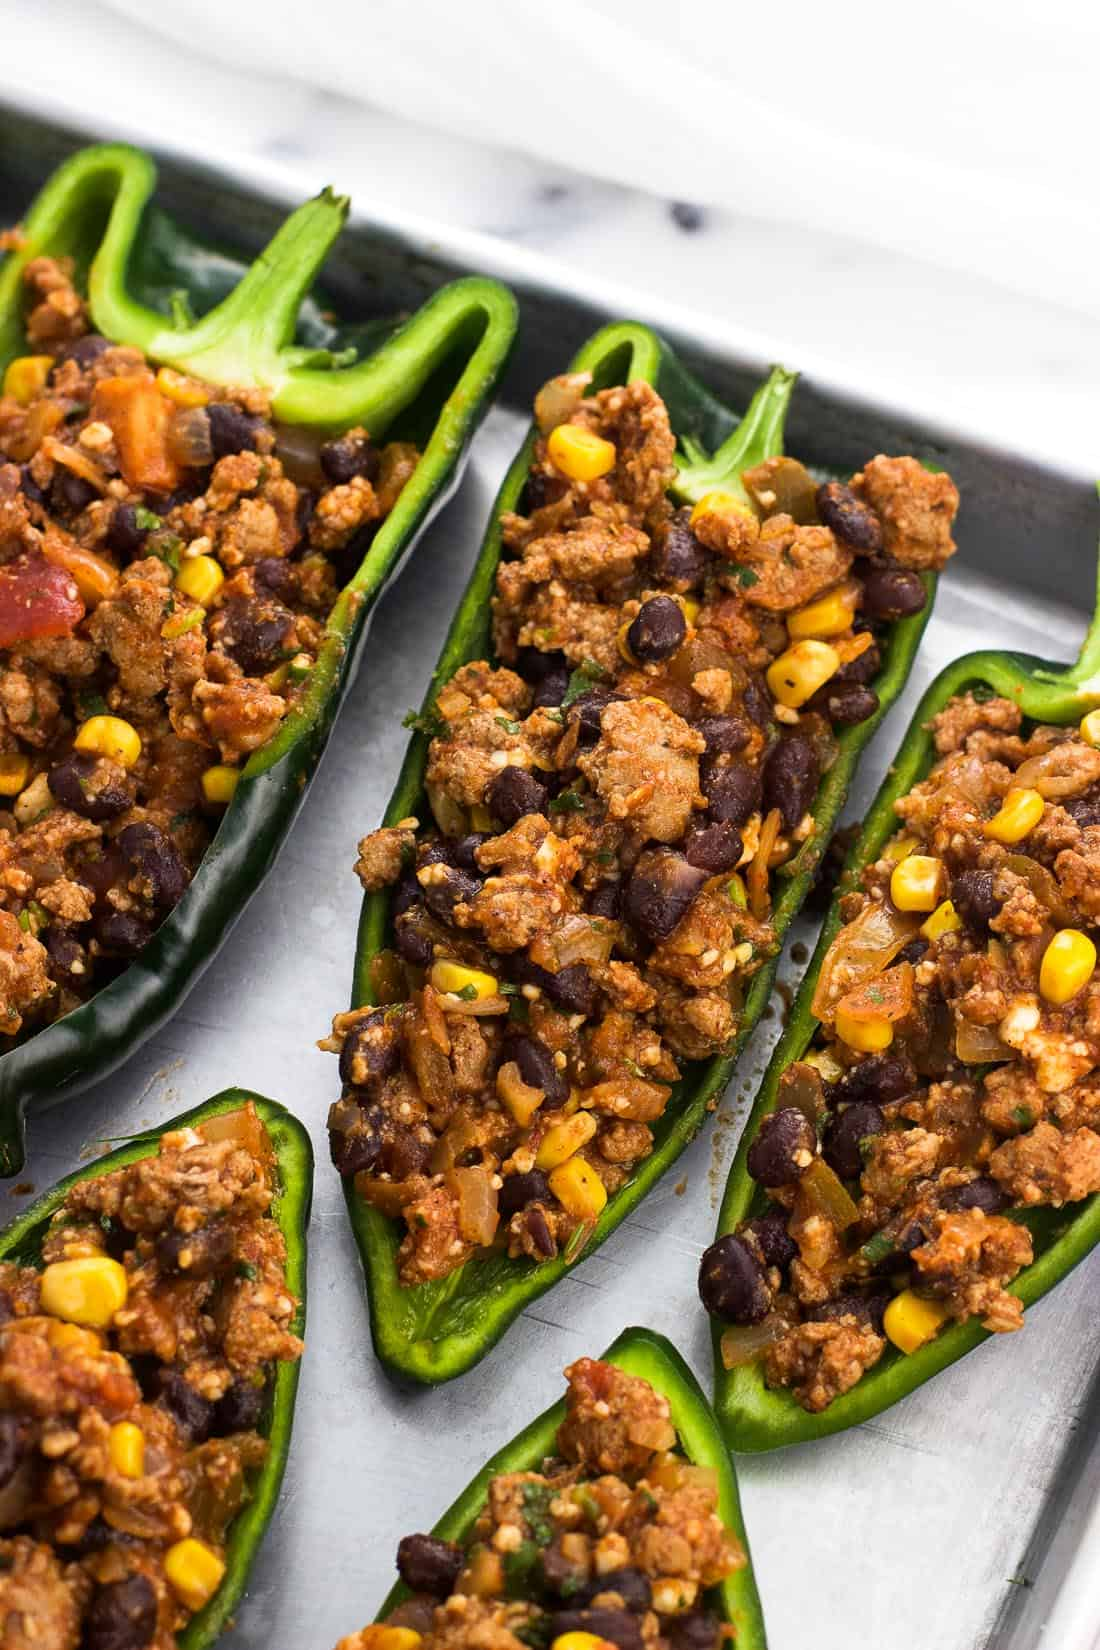 Stuffed poblano peppers on a metal baking sheet before being topped with cheese